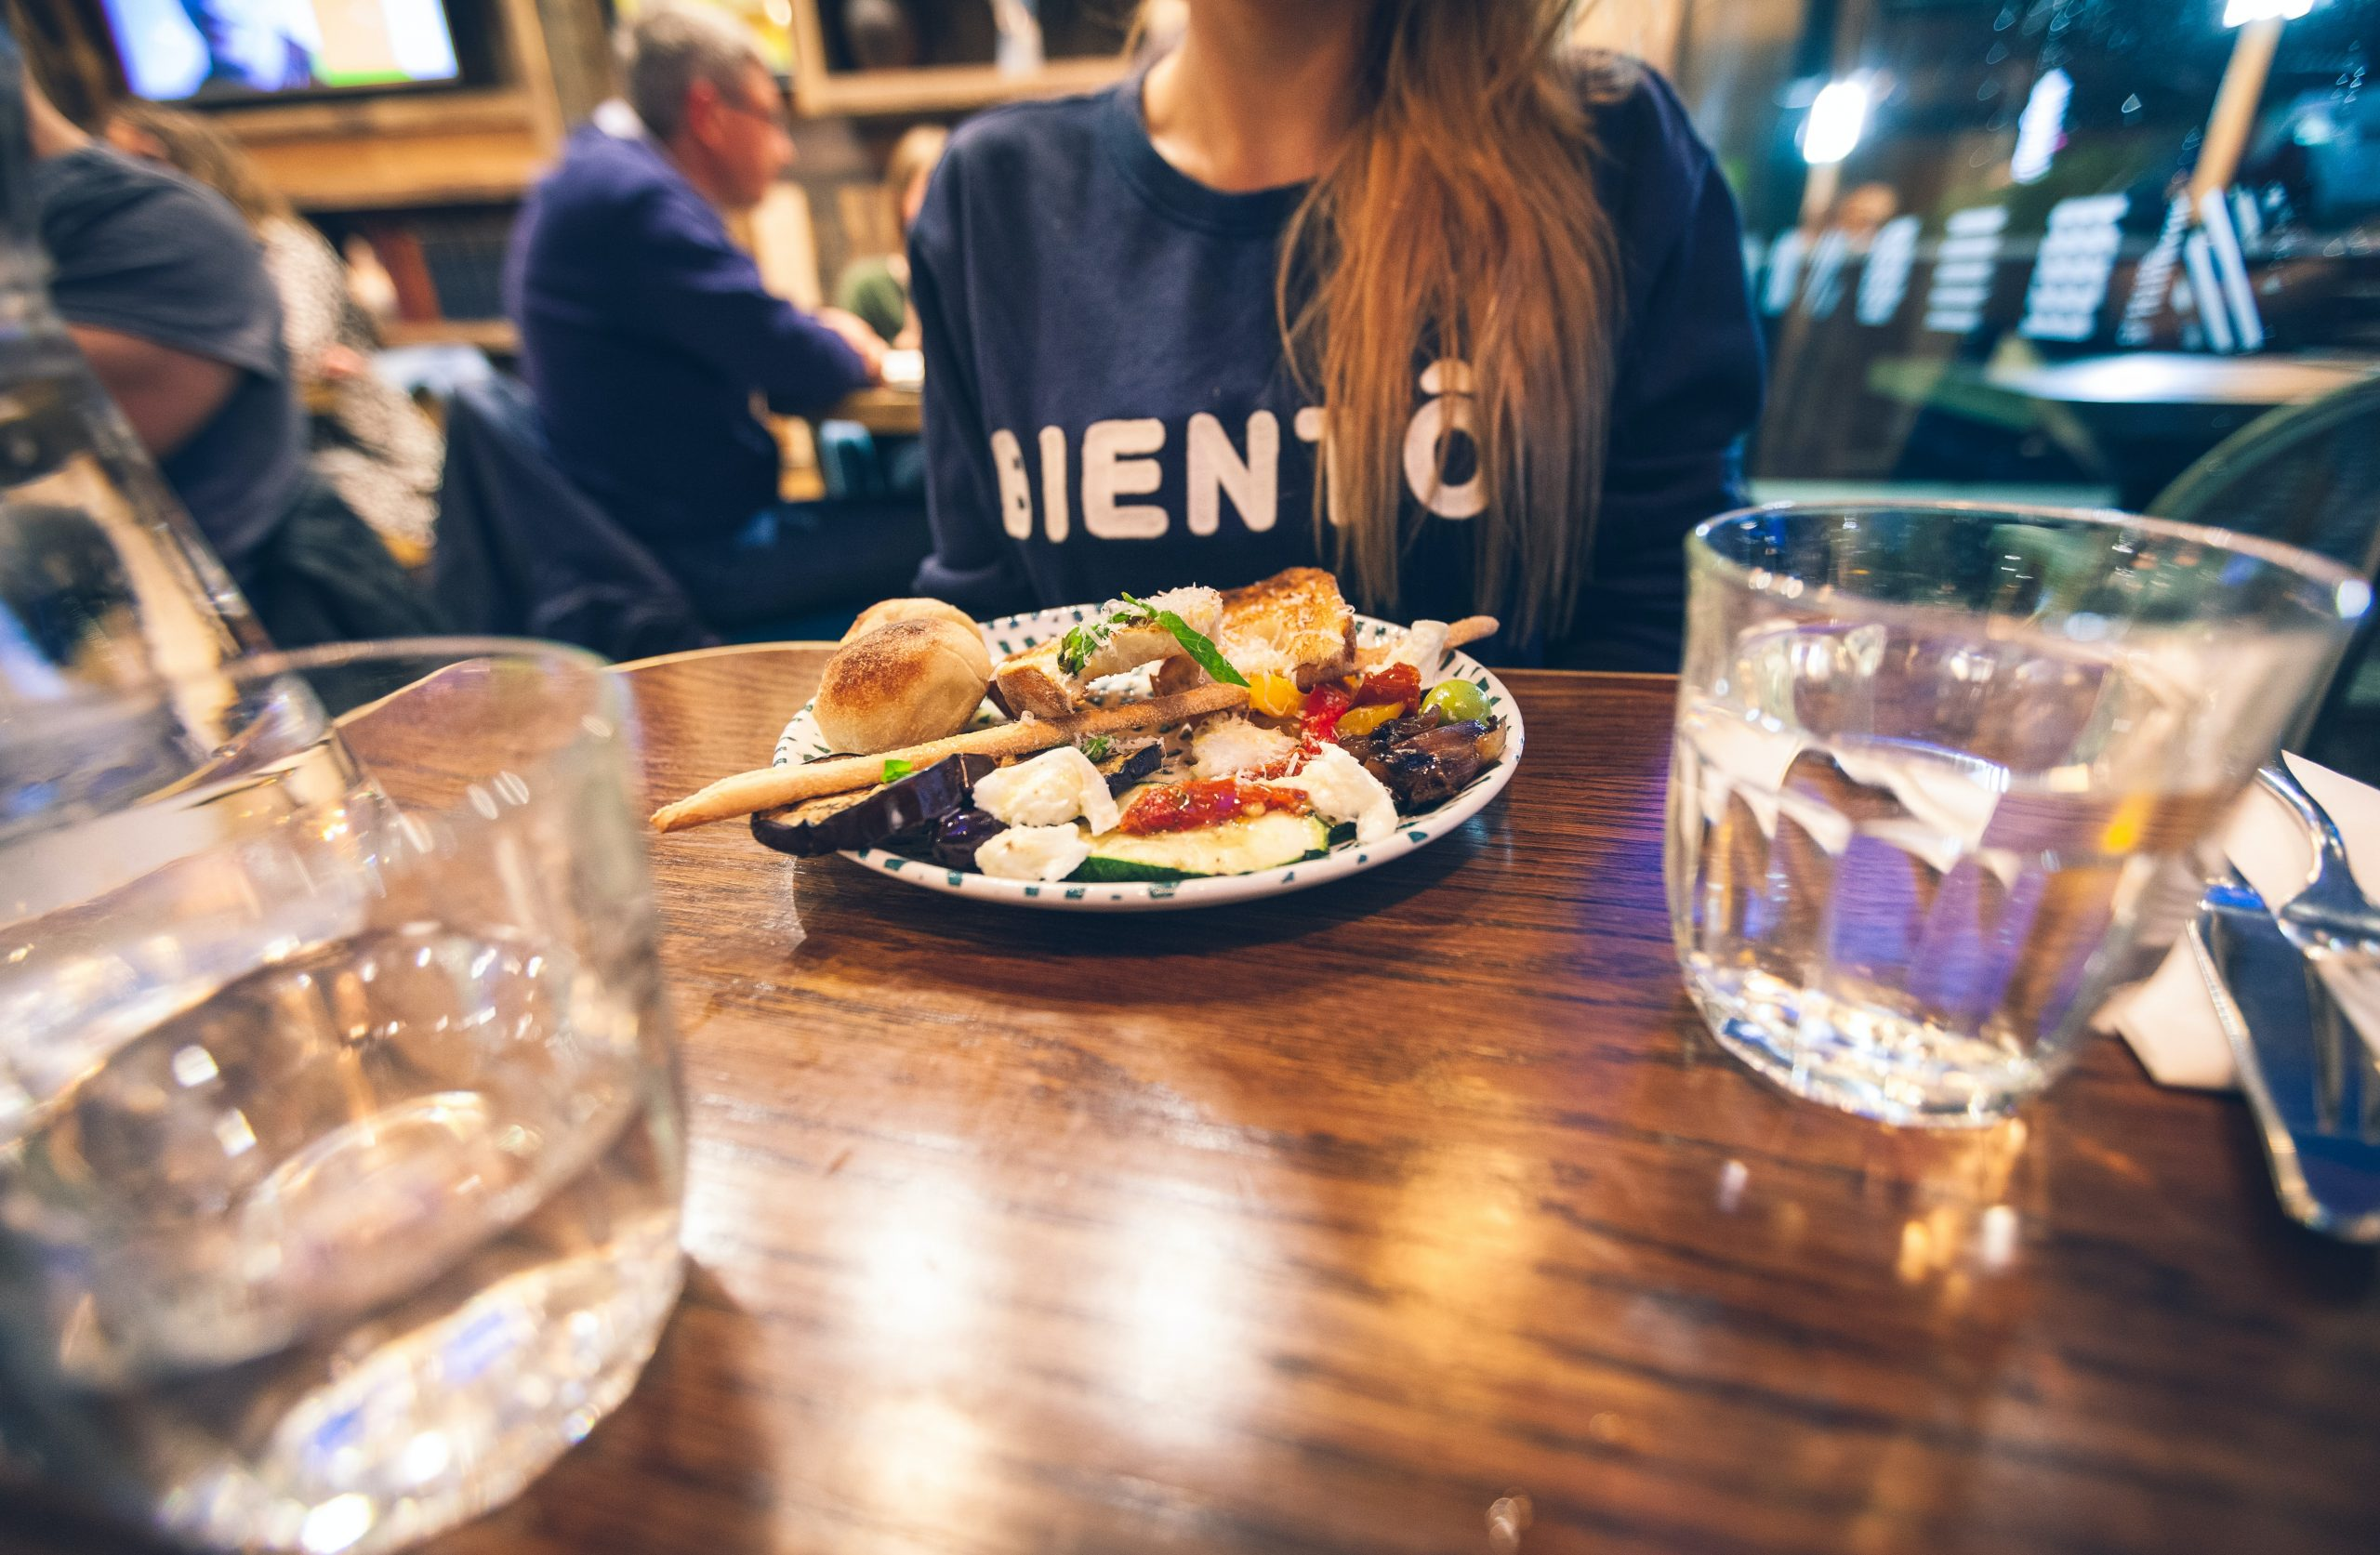 Diner in London. Photo by Artur Tumasjan on Unsplash